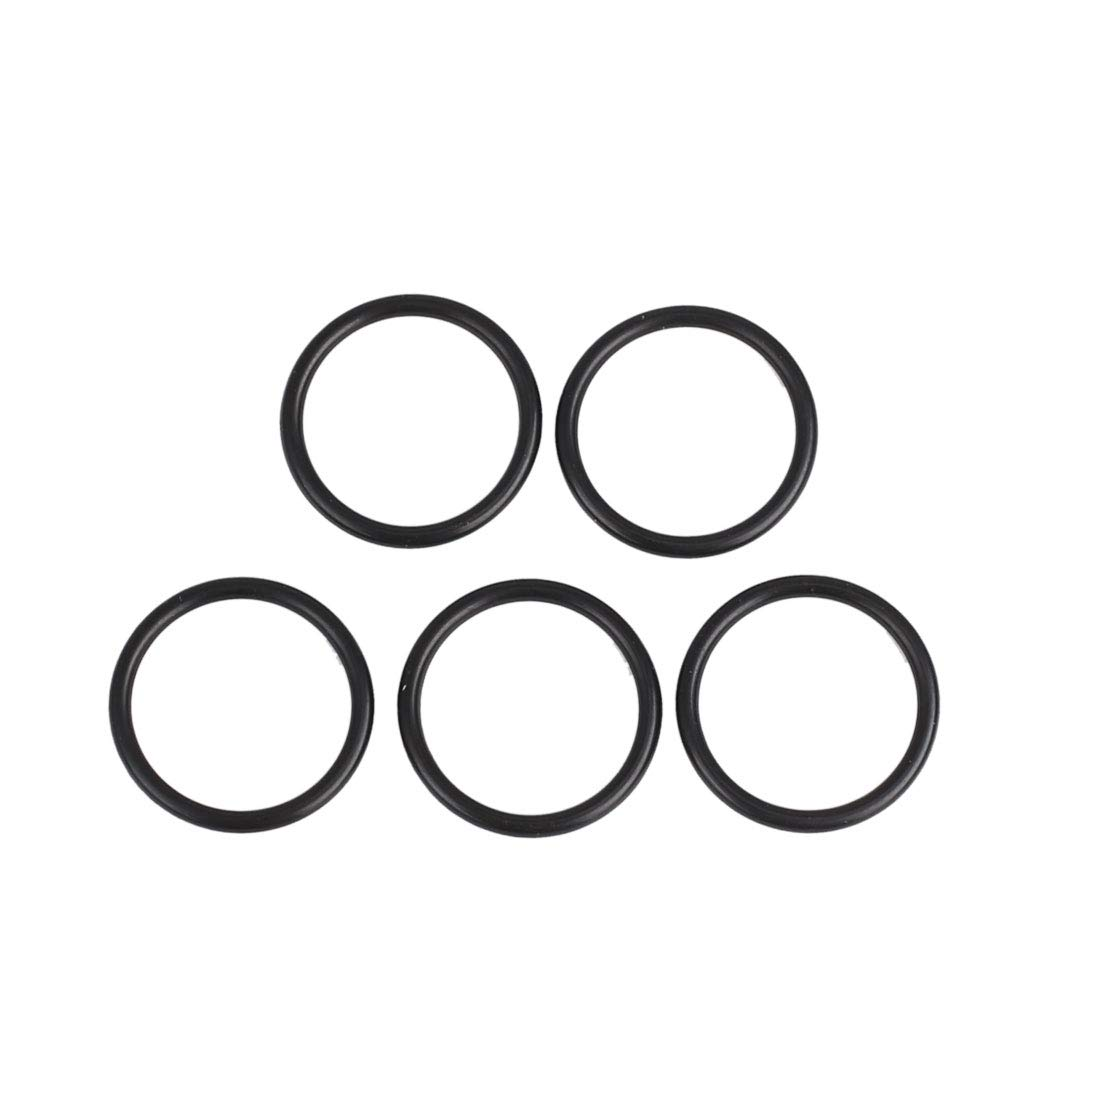 X AUTOHAUX 5pcs JIS Black NBR70 Rubber O-Ring Washer Sealing Gasket For Car 14 X 1.5mm